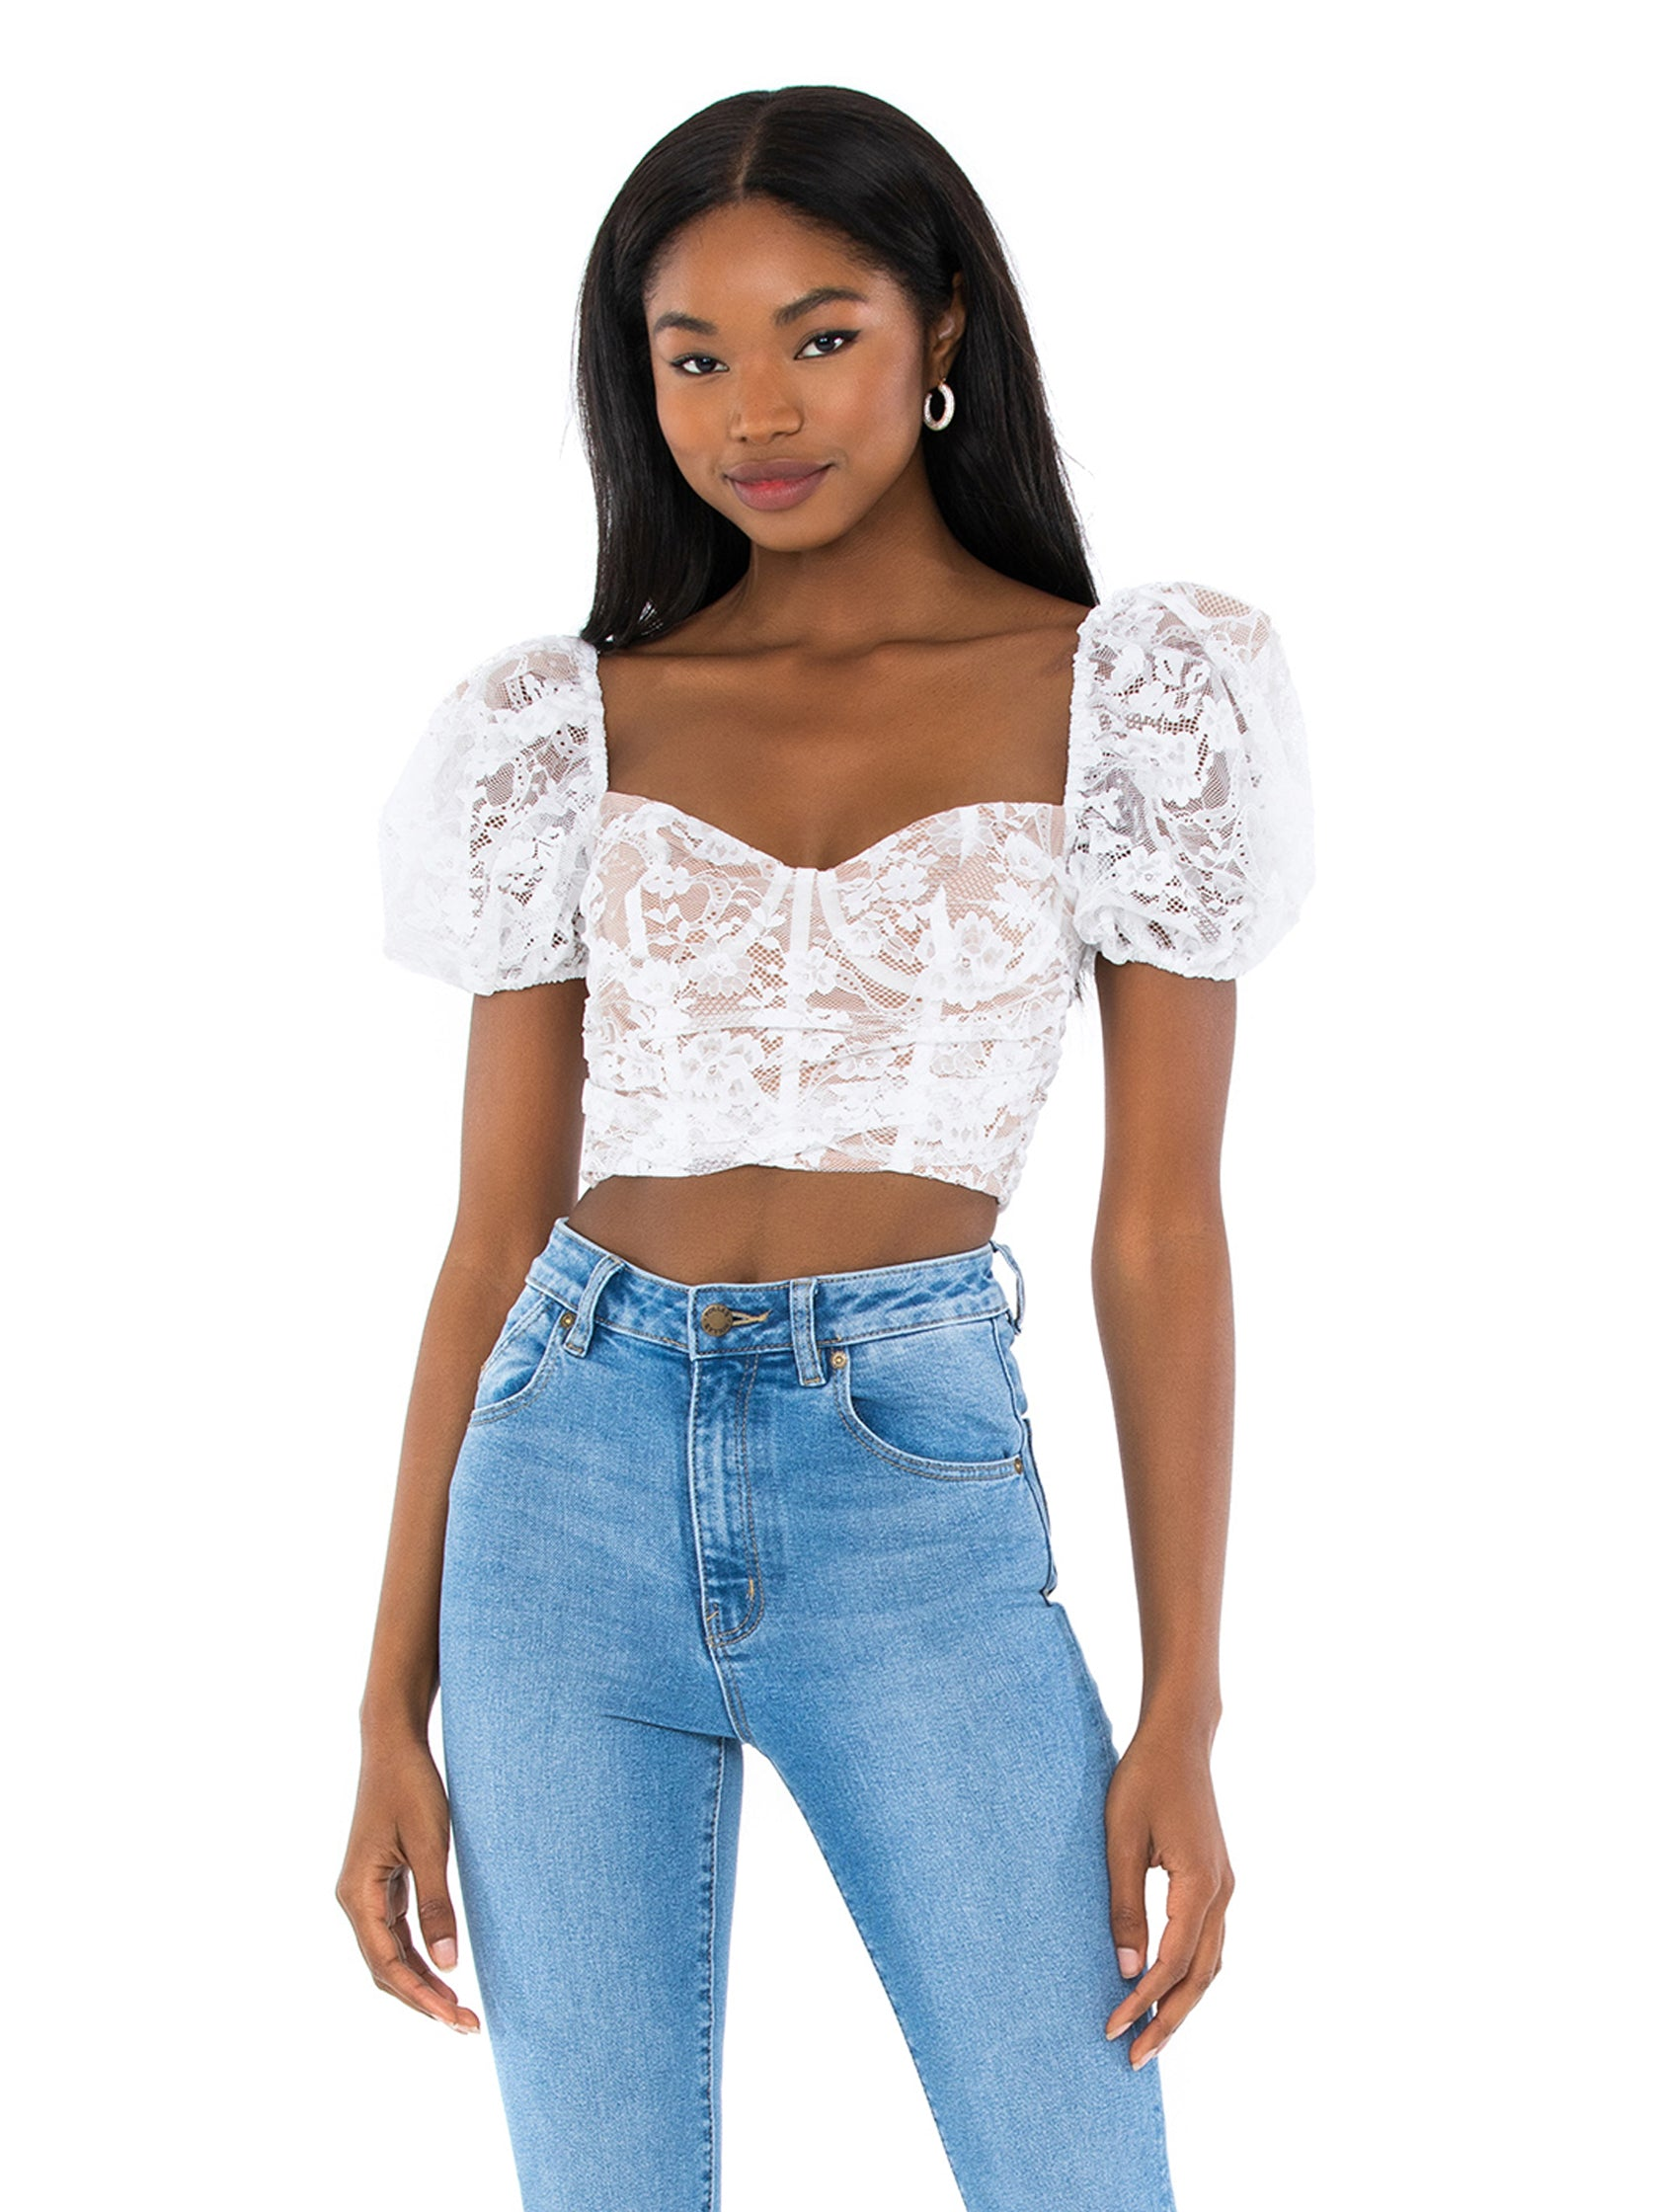 Woman wearing a top rental from For Love & Lemons called Rosalie Crop Top